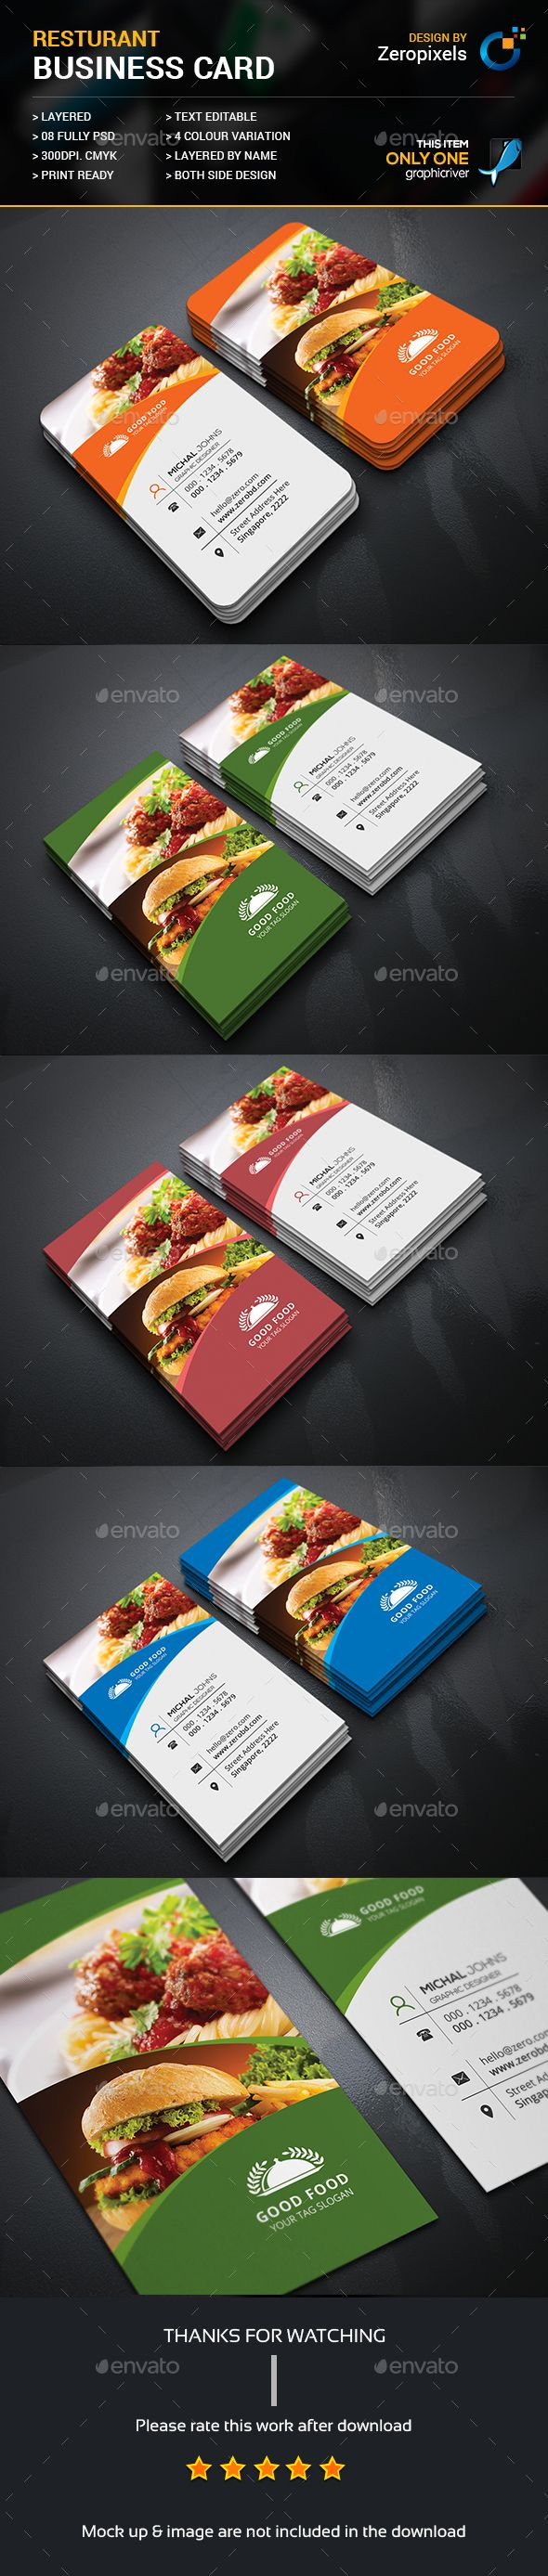 133 Best Business Cards A C Images On Pinterest Business Card